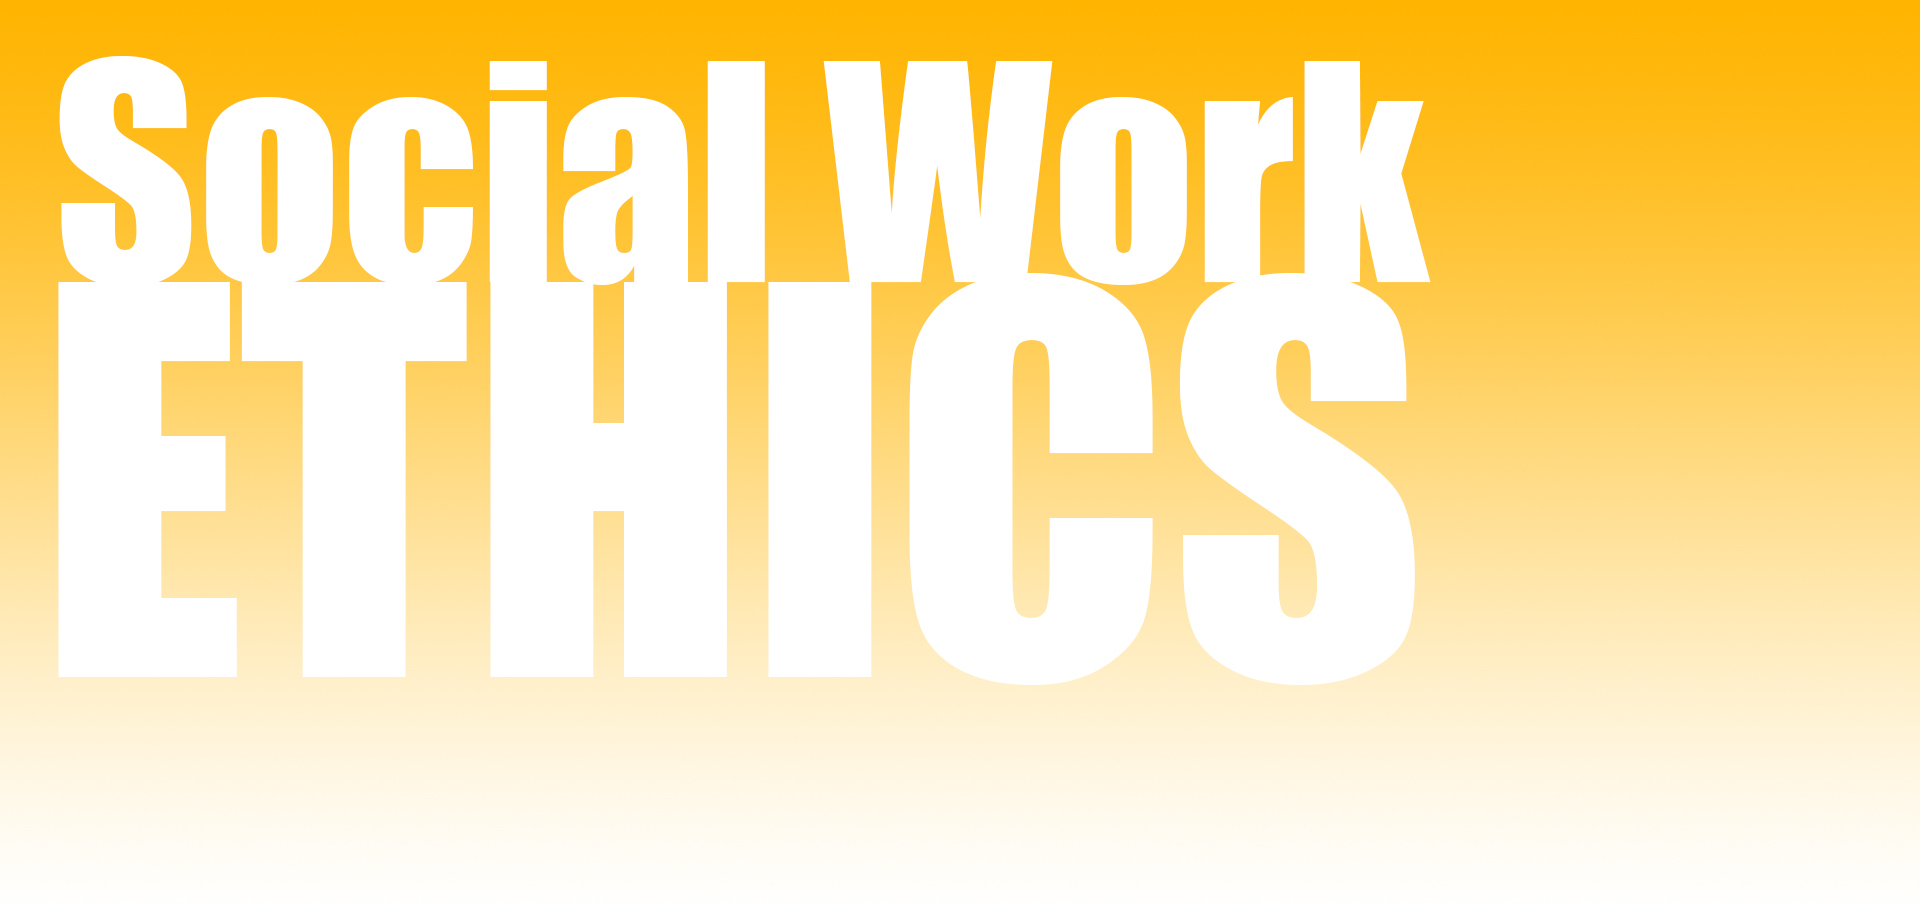 Social Work Values and Ethics   Goodwin College